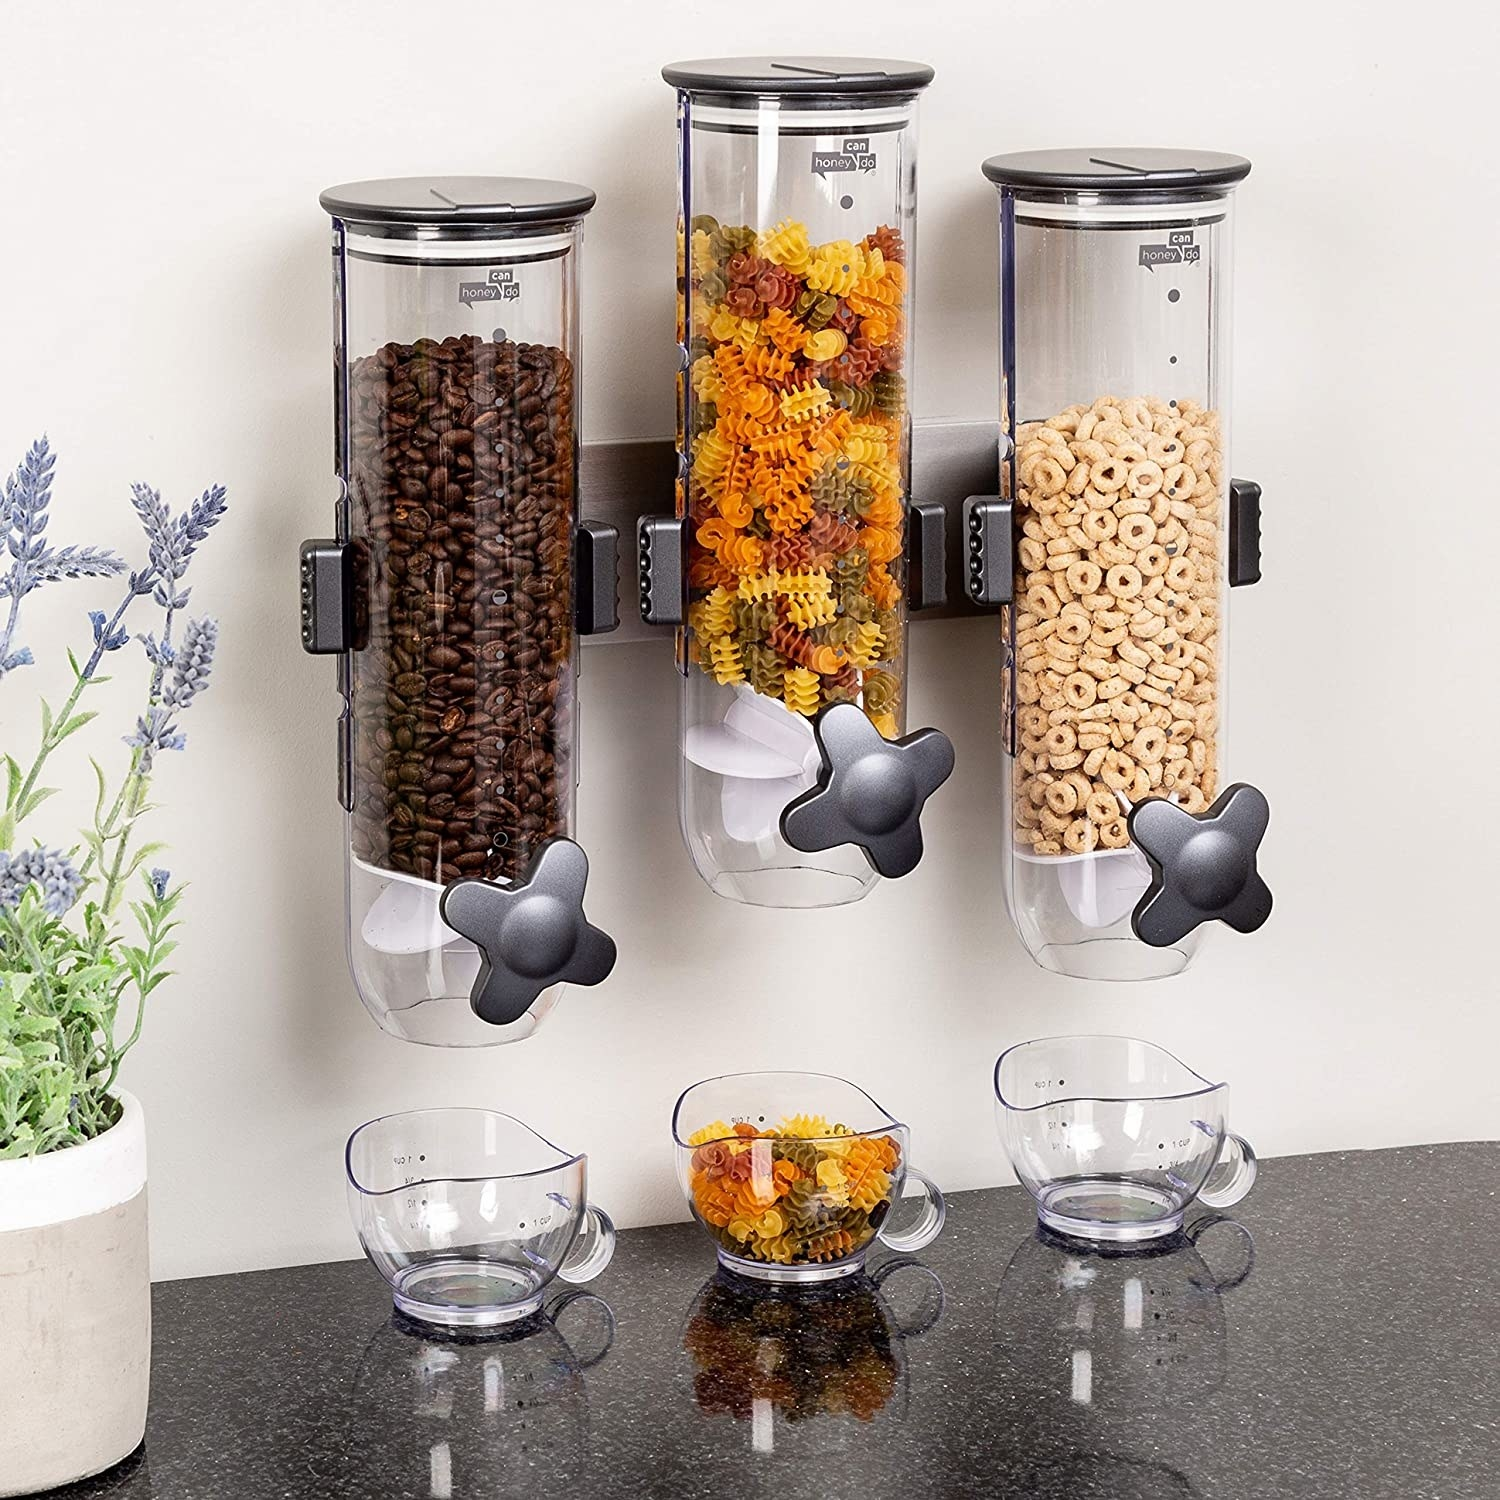 The three canisters filled with pasta, coffee beans, and cereal